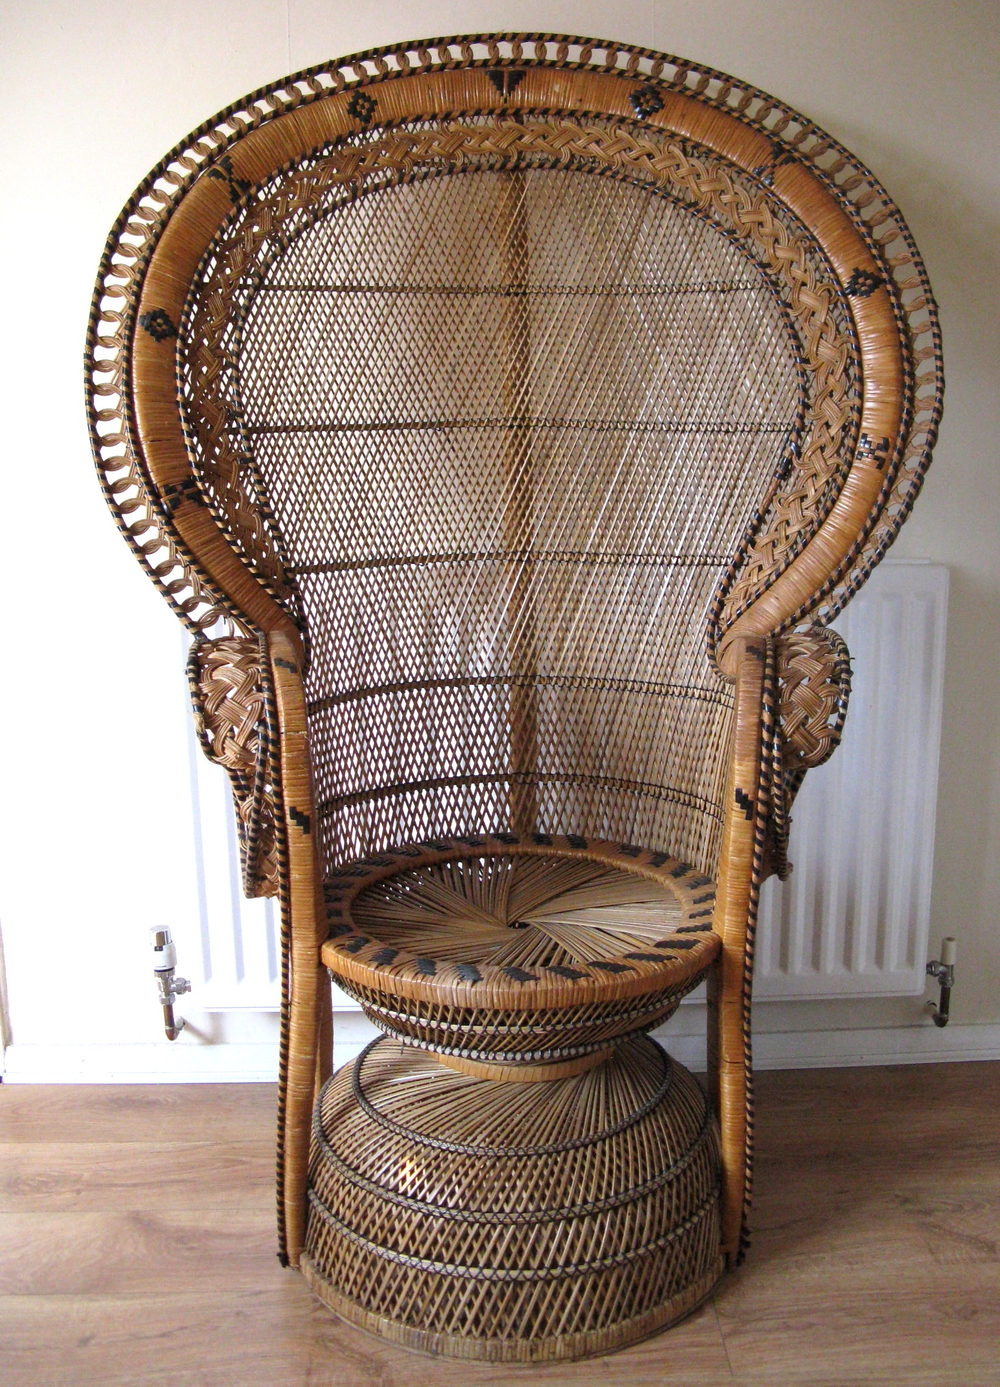 Antique Wicker Furniture for Sale Awesome Antiques atlas Retro Peacock Chair